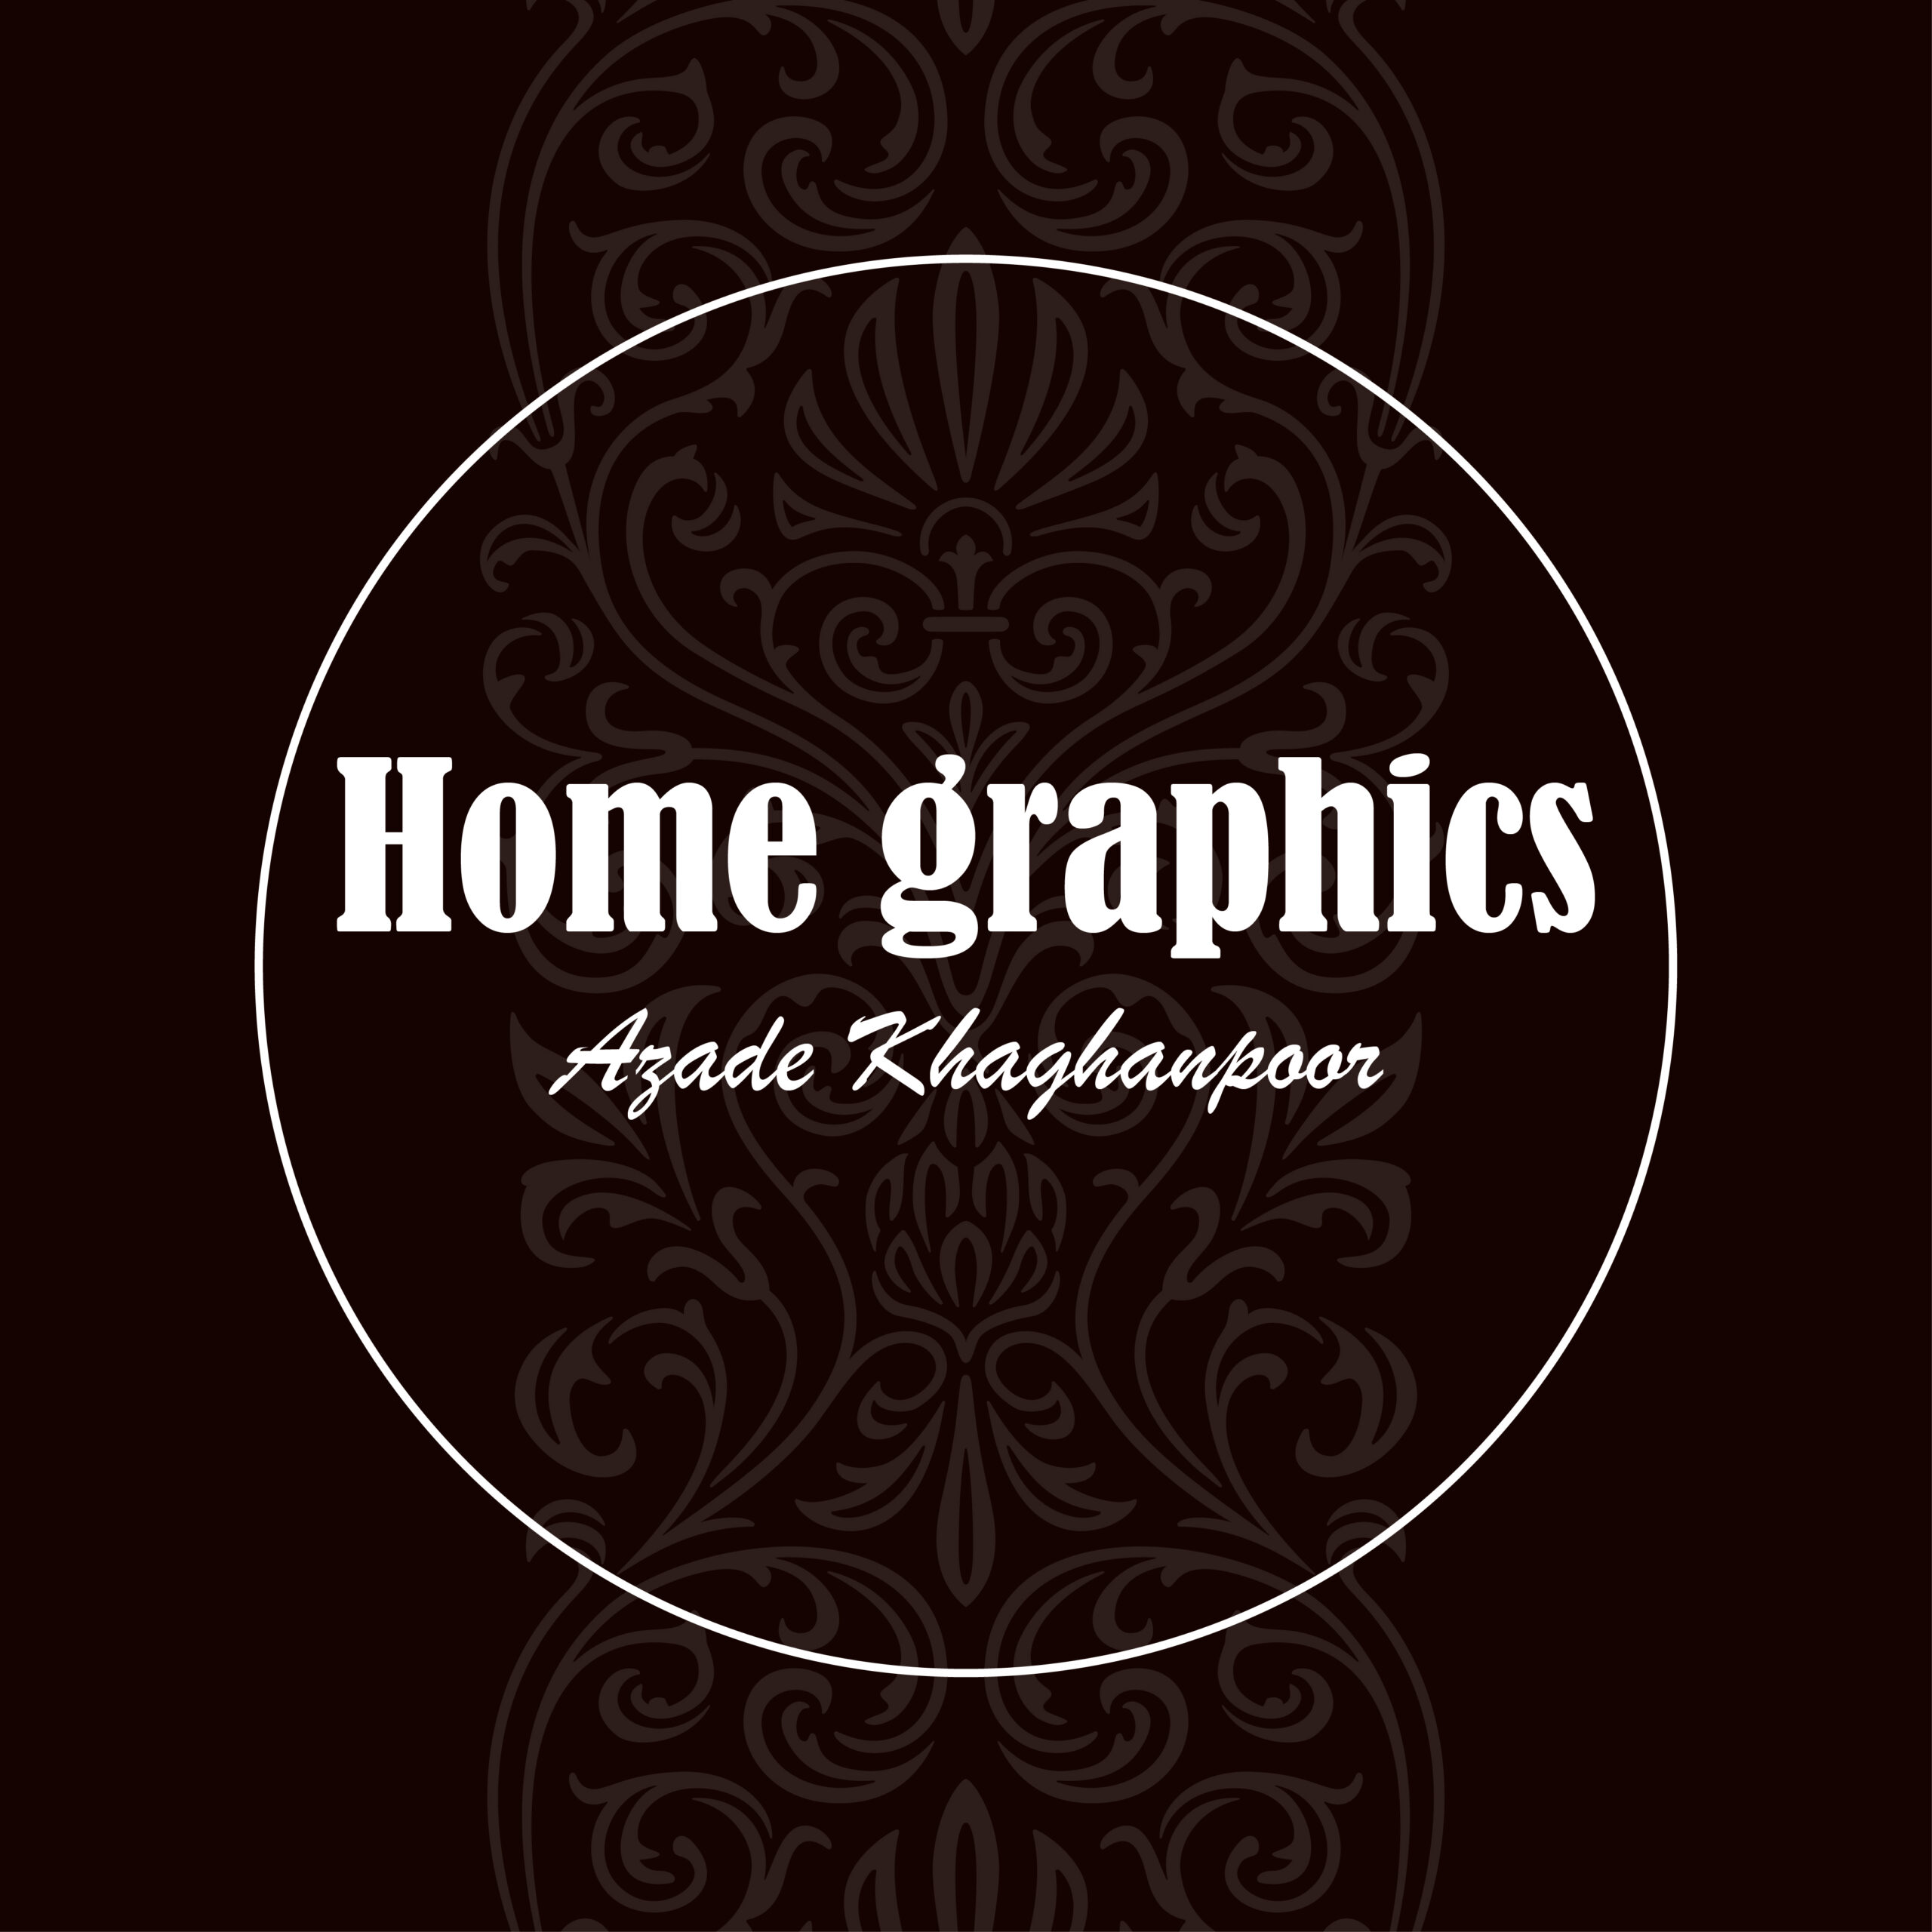 Home.graphics